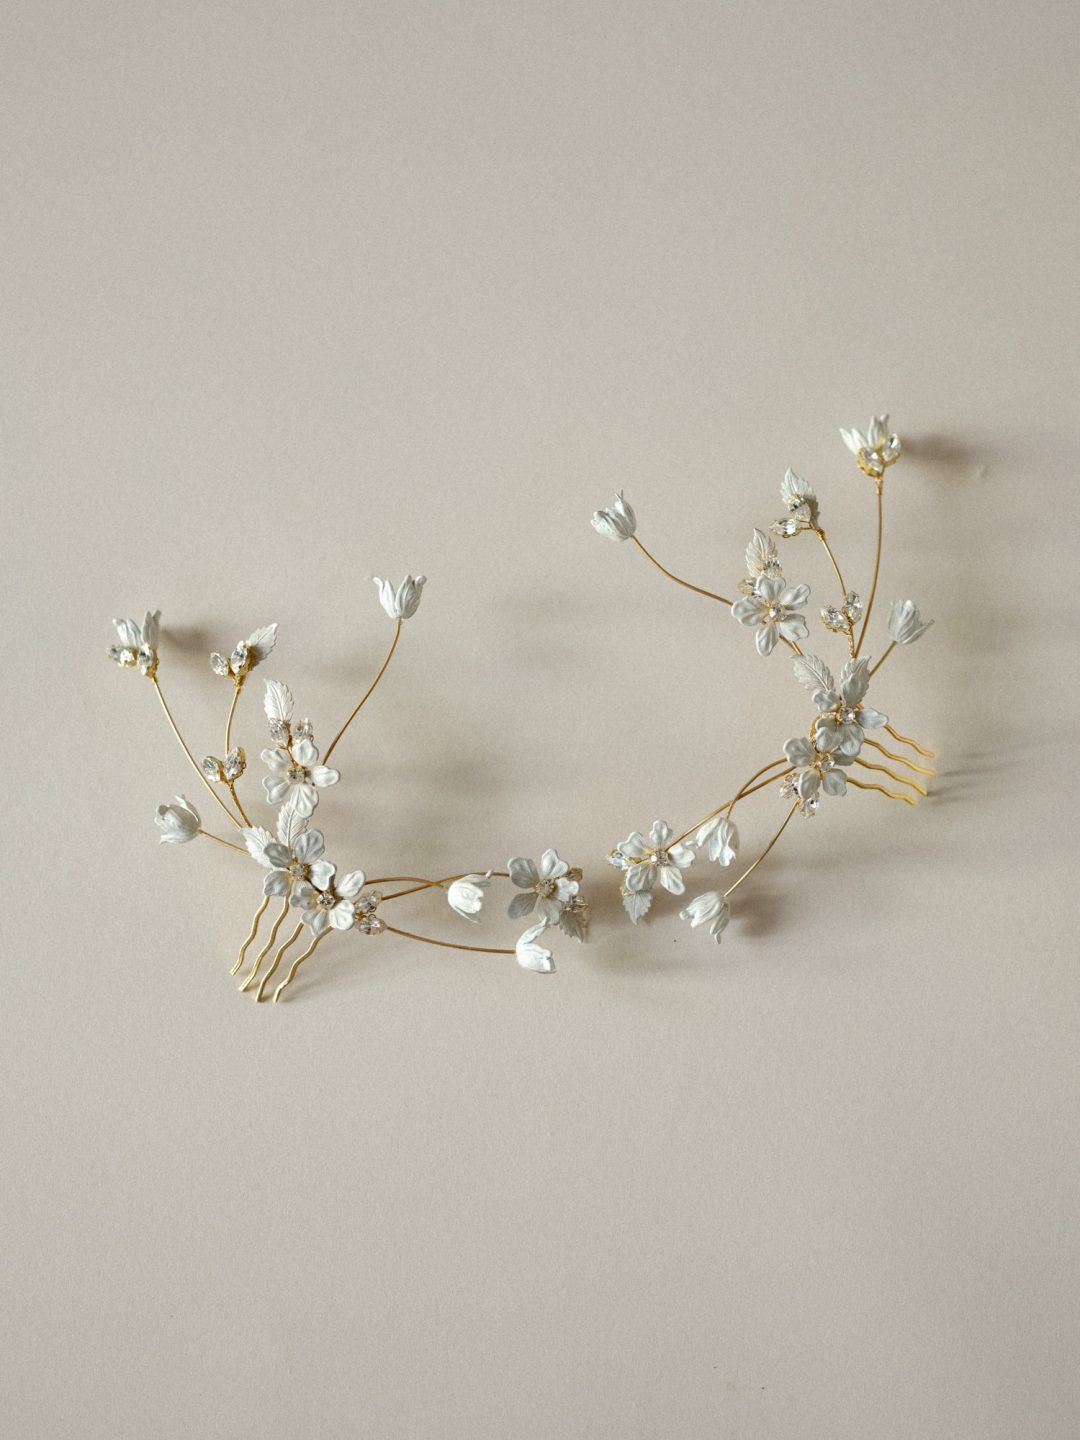 Style 811 - MODERN BRIDAL HEADPIECE by SIBO Designs Couture www.sibodesigns.com